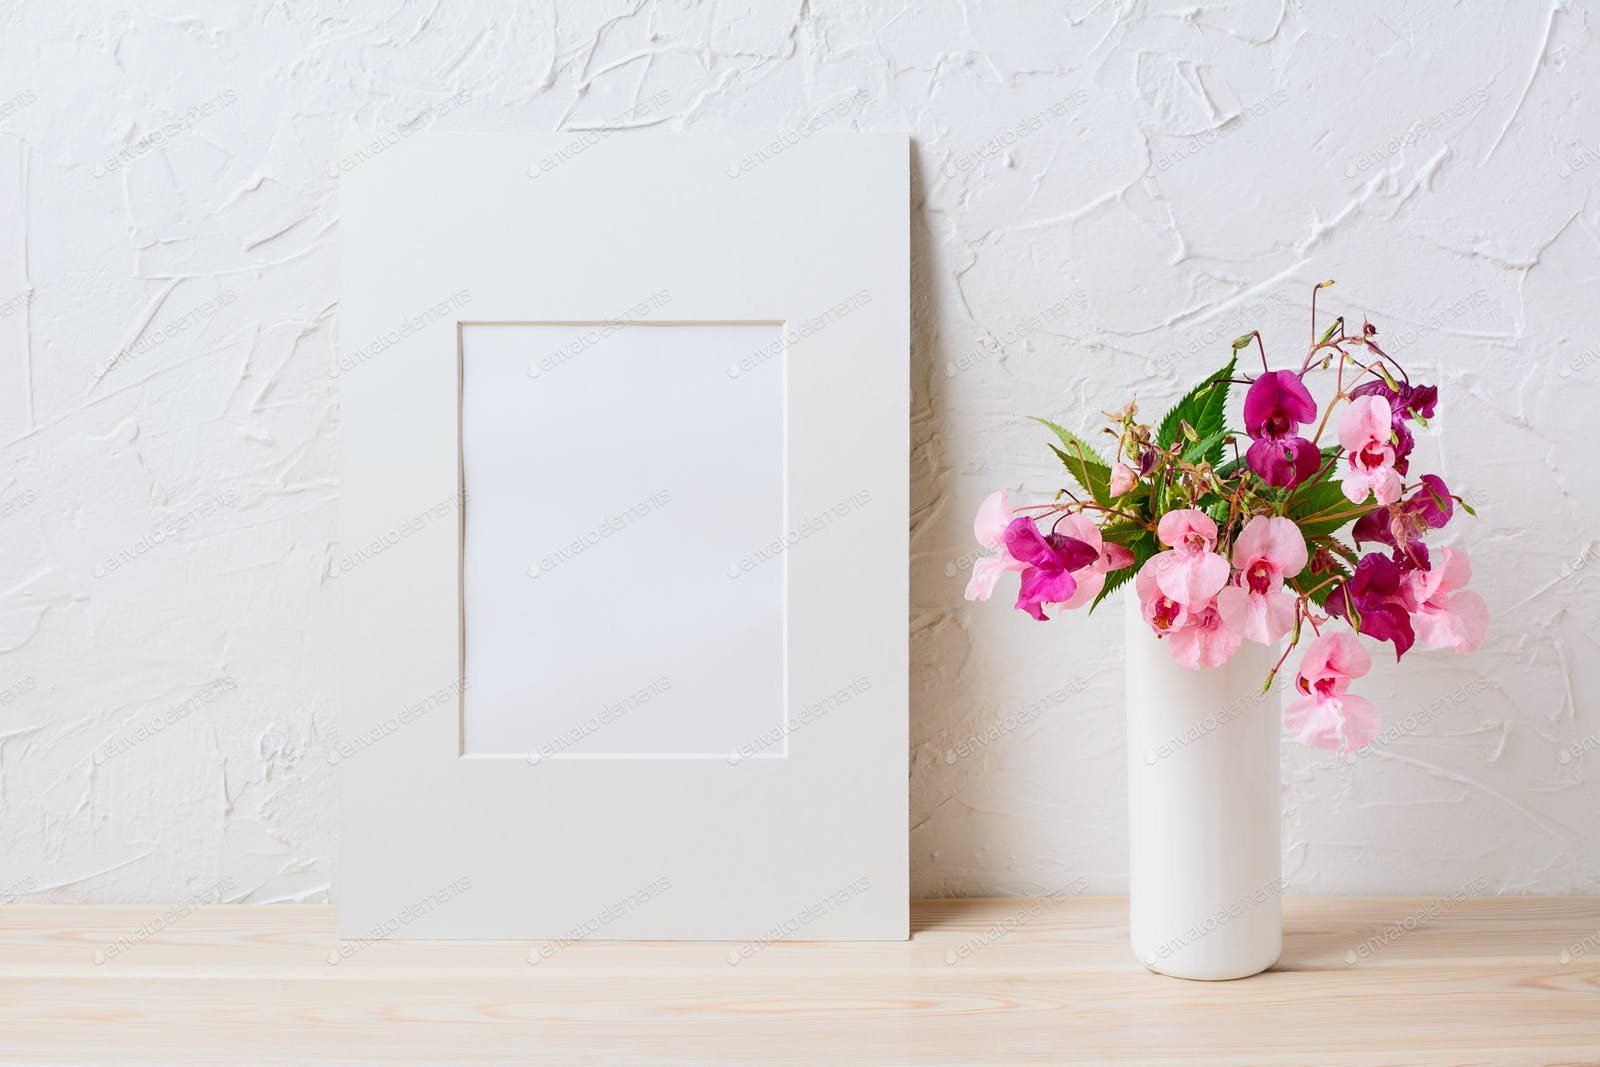 White mat frame mockup with pink and purple flower bouquet photo by white mat frame mockup with pink and purple flower bouquet photo by tasipas on envato elements izmirmasajfo